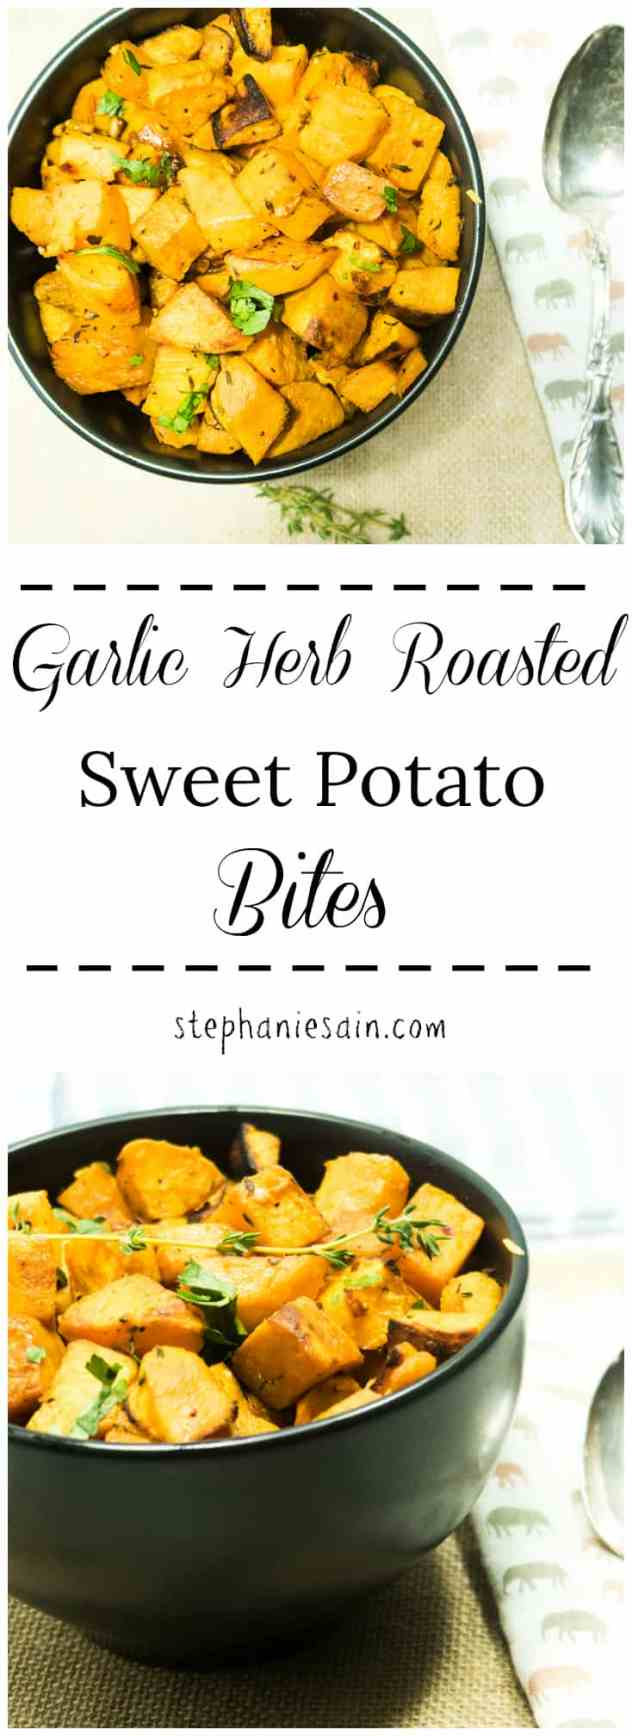 Garlic Herb Roasted Sweet Potato Bites are perfectly seasoned with fresh thyme & garlic then slowly roasted to perfection. Perfect easy side any time or great for a Holiday meal. Vegan & Gluten Free.